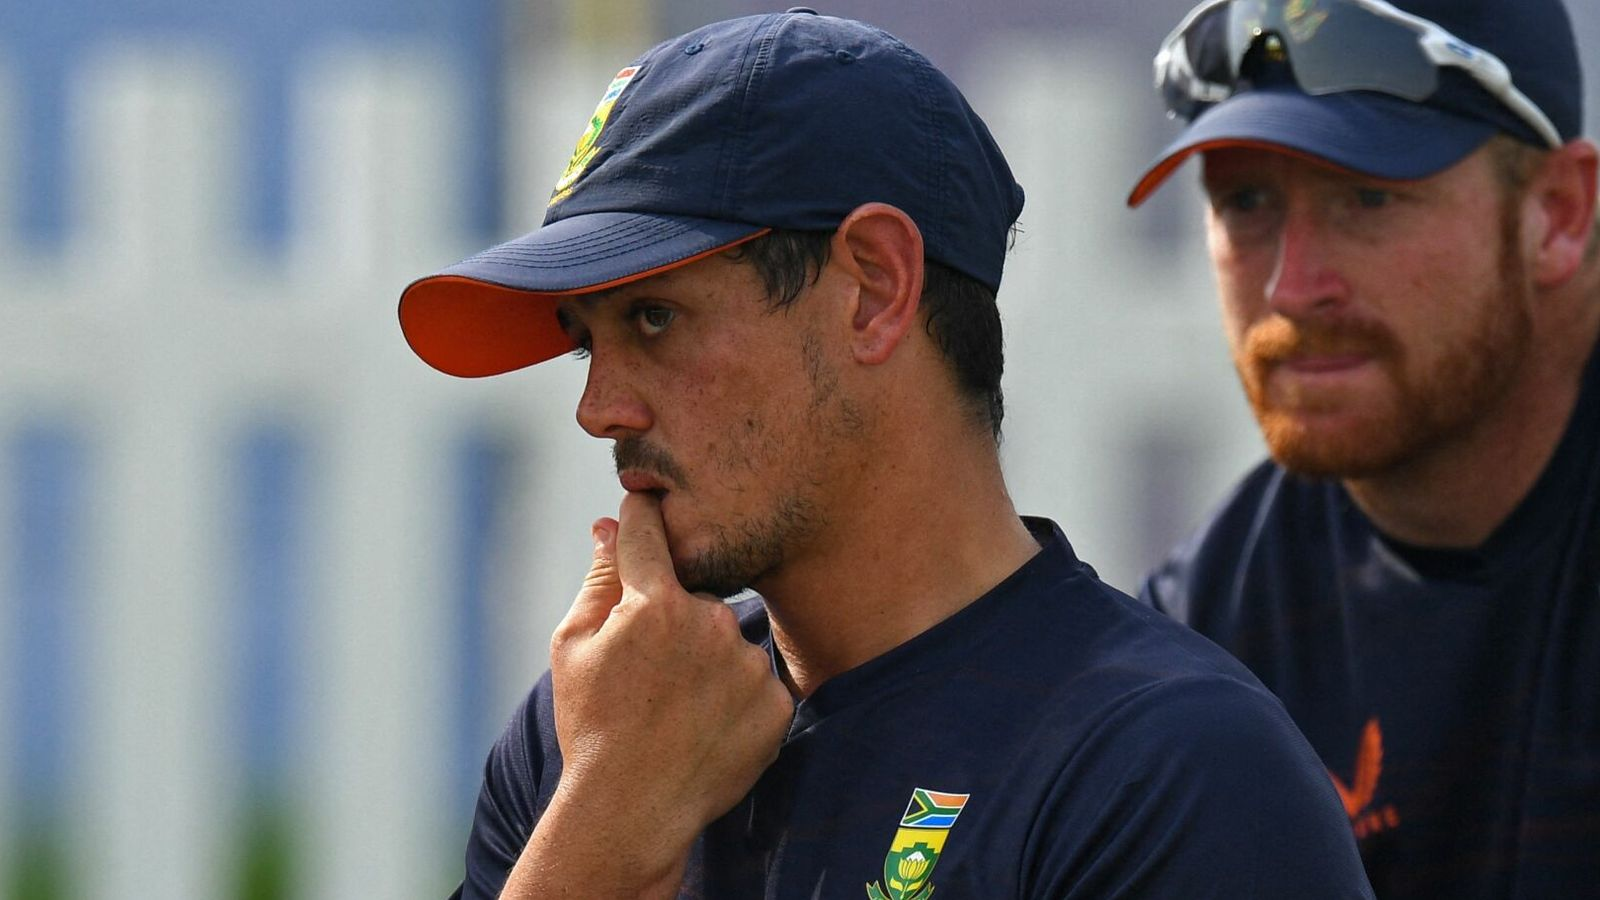 Quinton de Kock misses South Africa vs West Indies after refusing to take a knee before T20 World Cup matches - Sky Sports